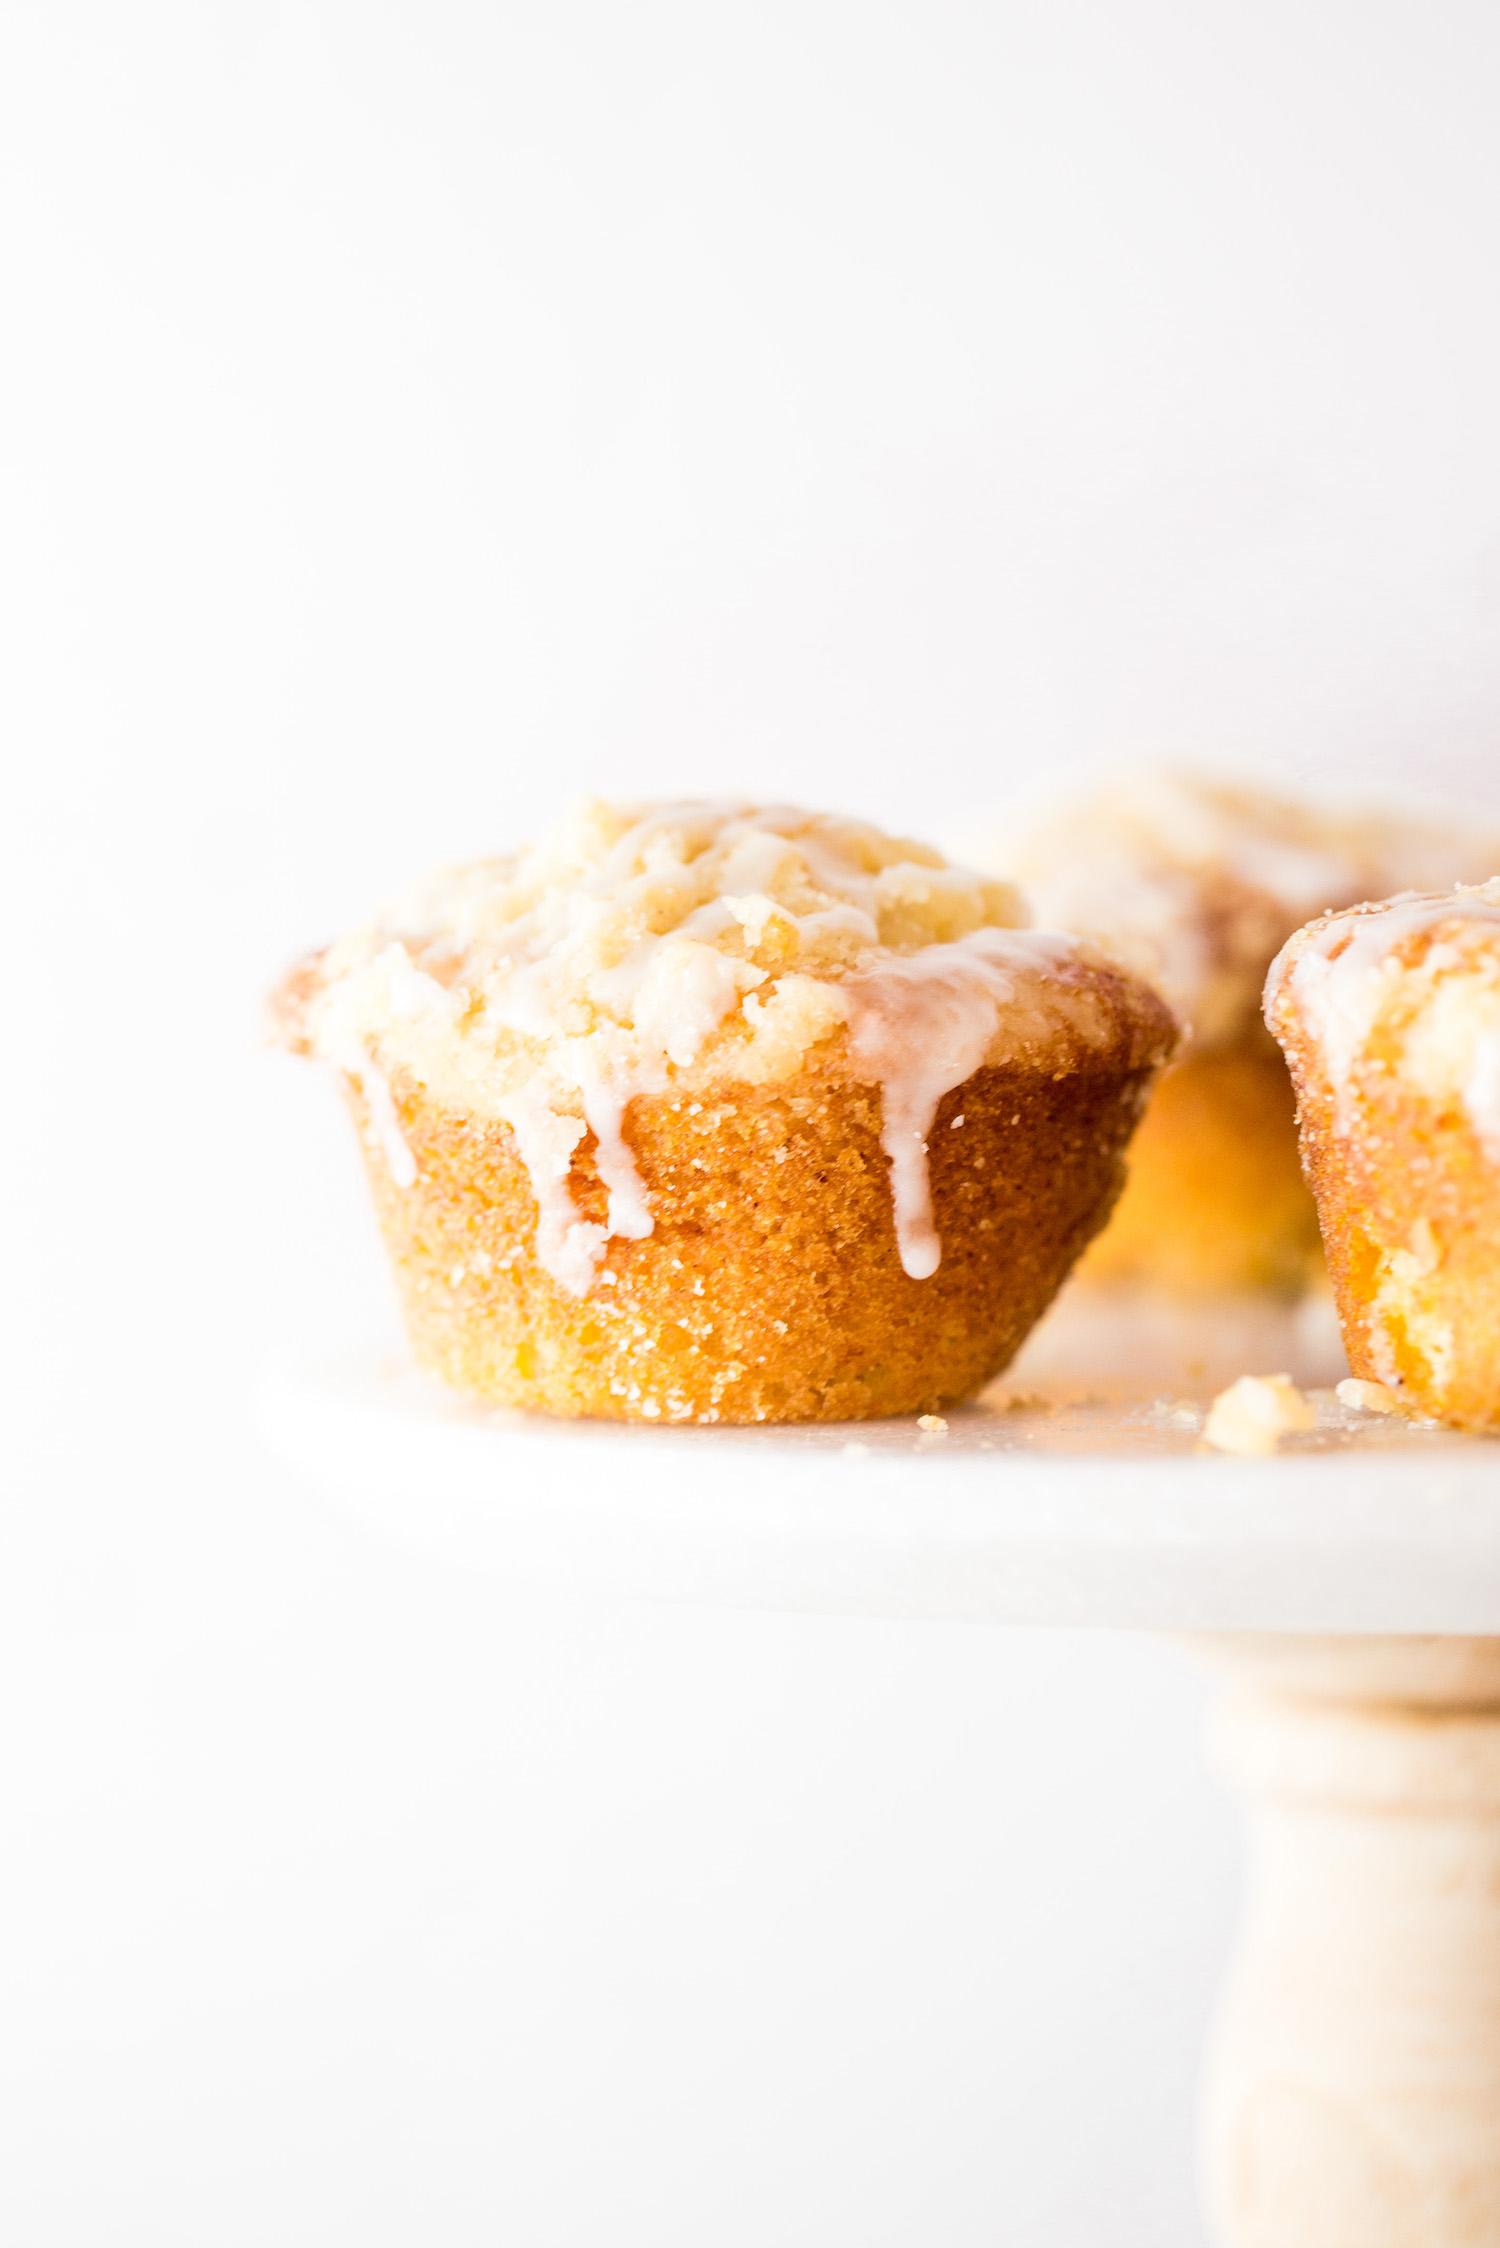 Peaches and Cream Muffins: soft, moist, fluffy, filled with juicy peaches, generously topped with crumble, and drizzled with a sweet glaze. Dairy-free! | TrufflesandTrends.com